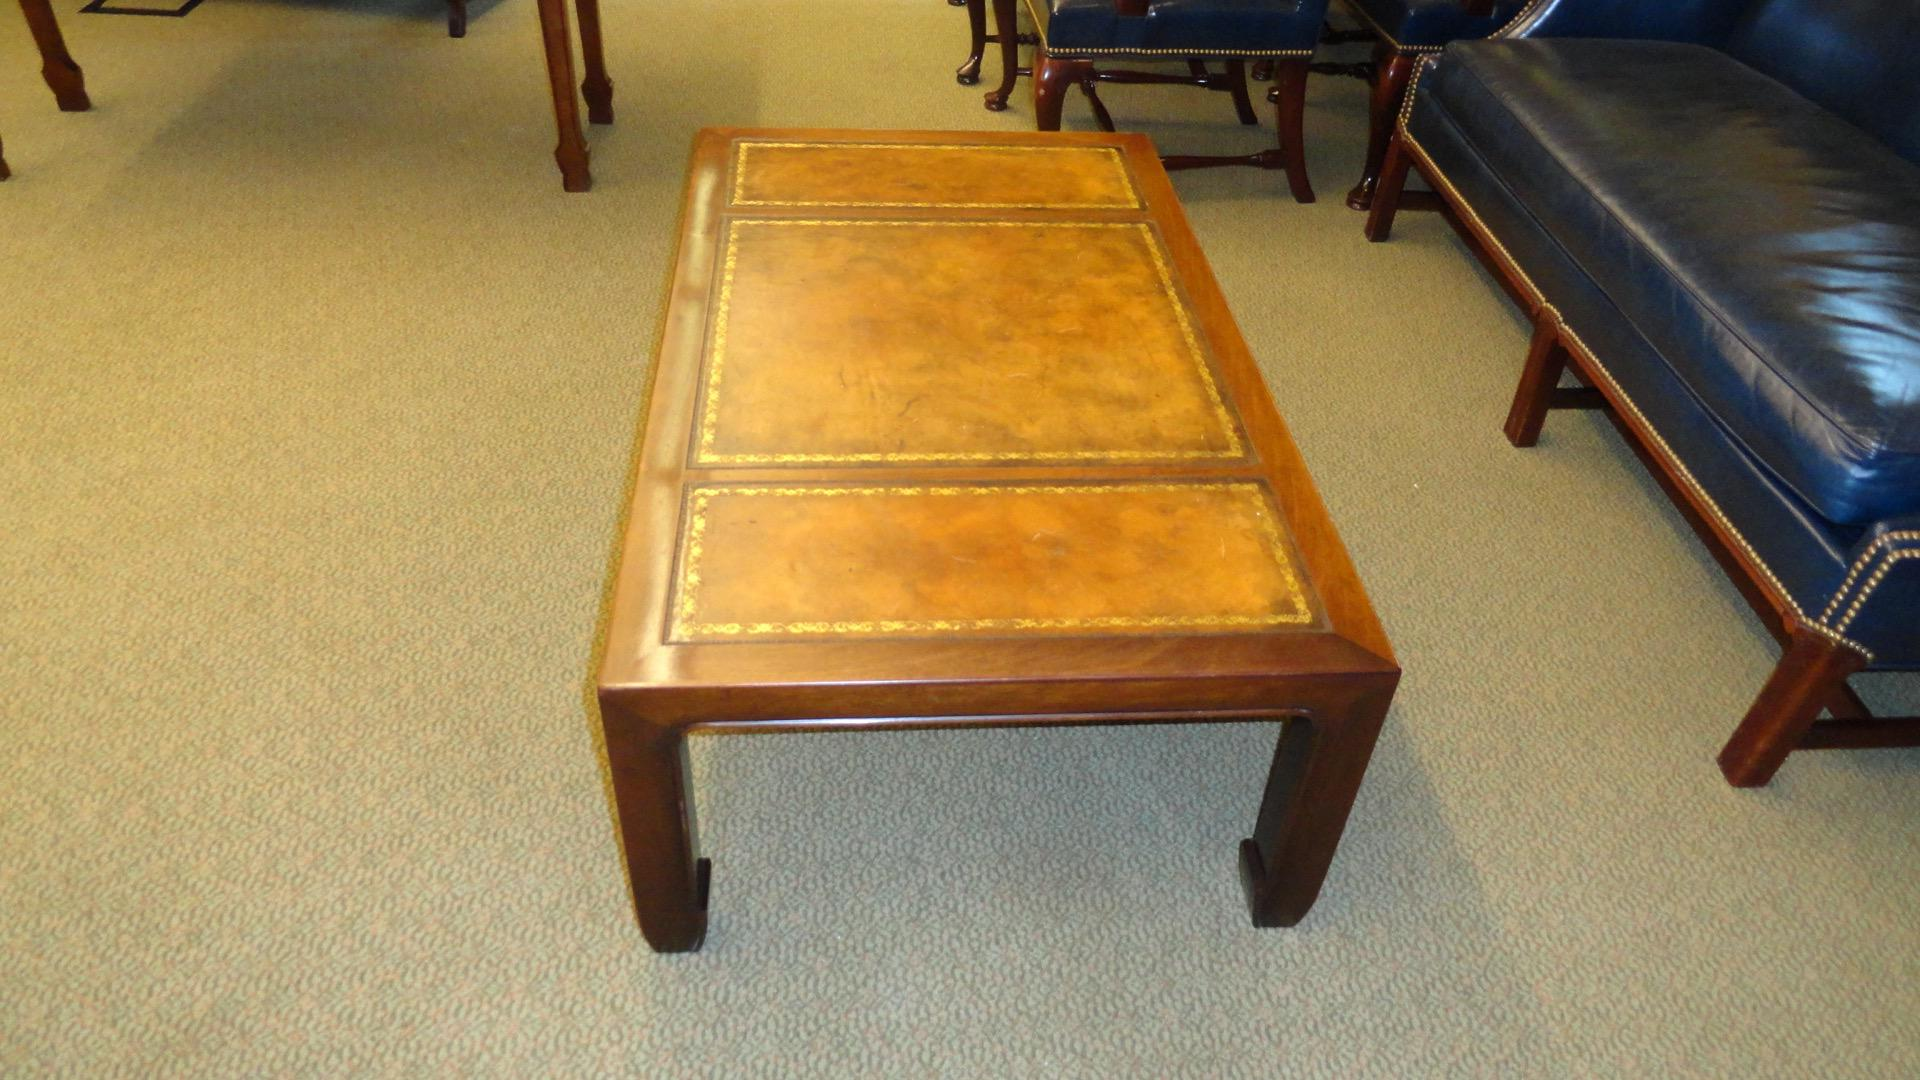 Leather Topped Baker Furniture Coffee Table. Moderate Wear. Some Scratches  And One Small Burn